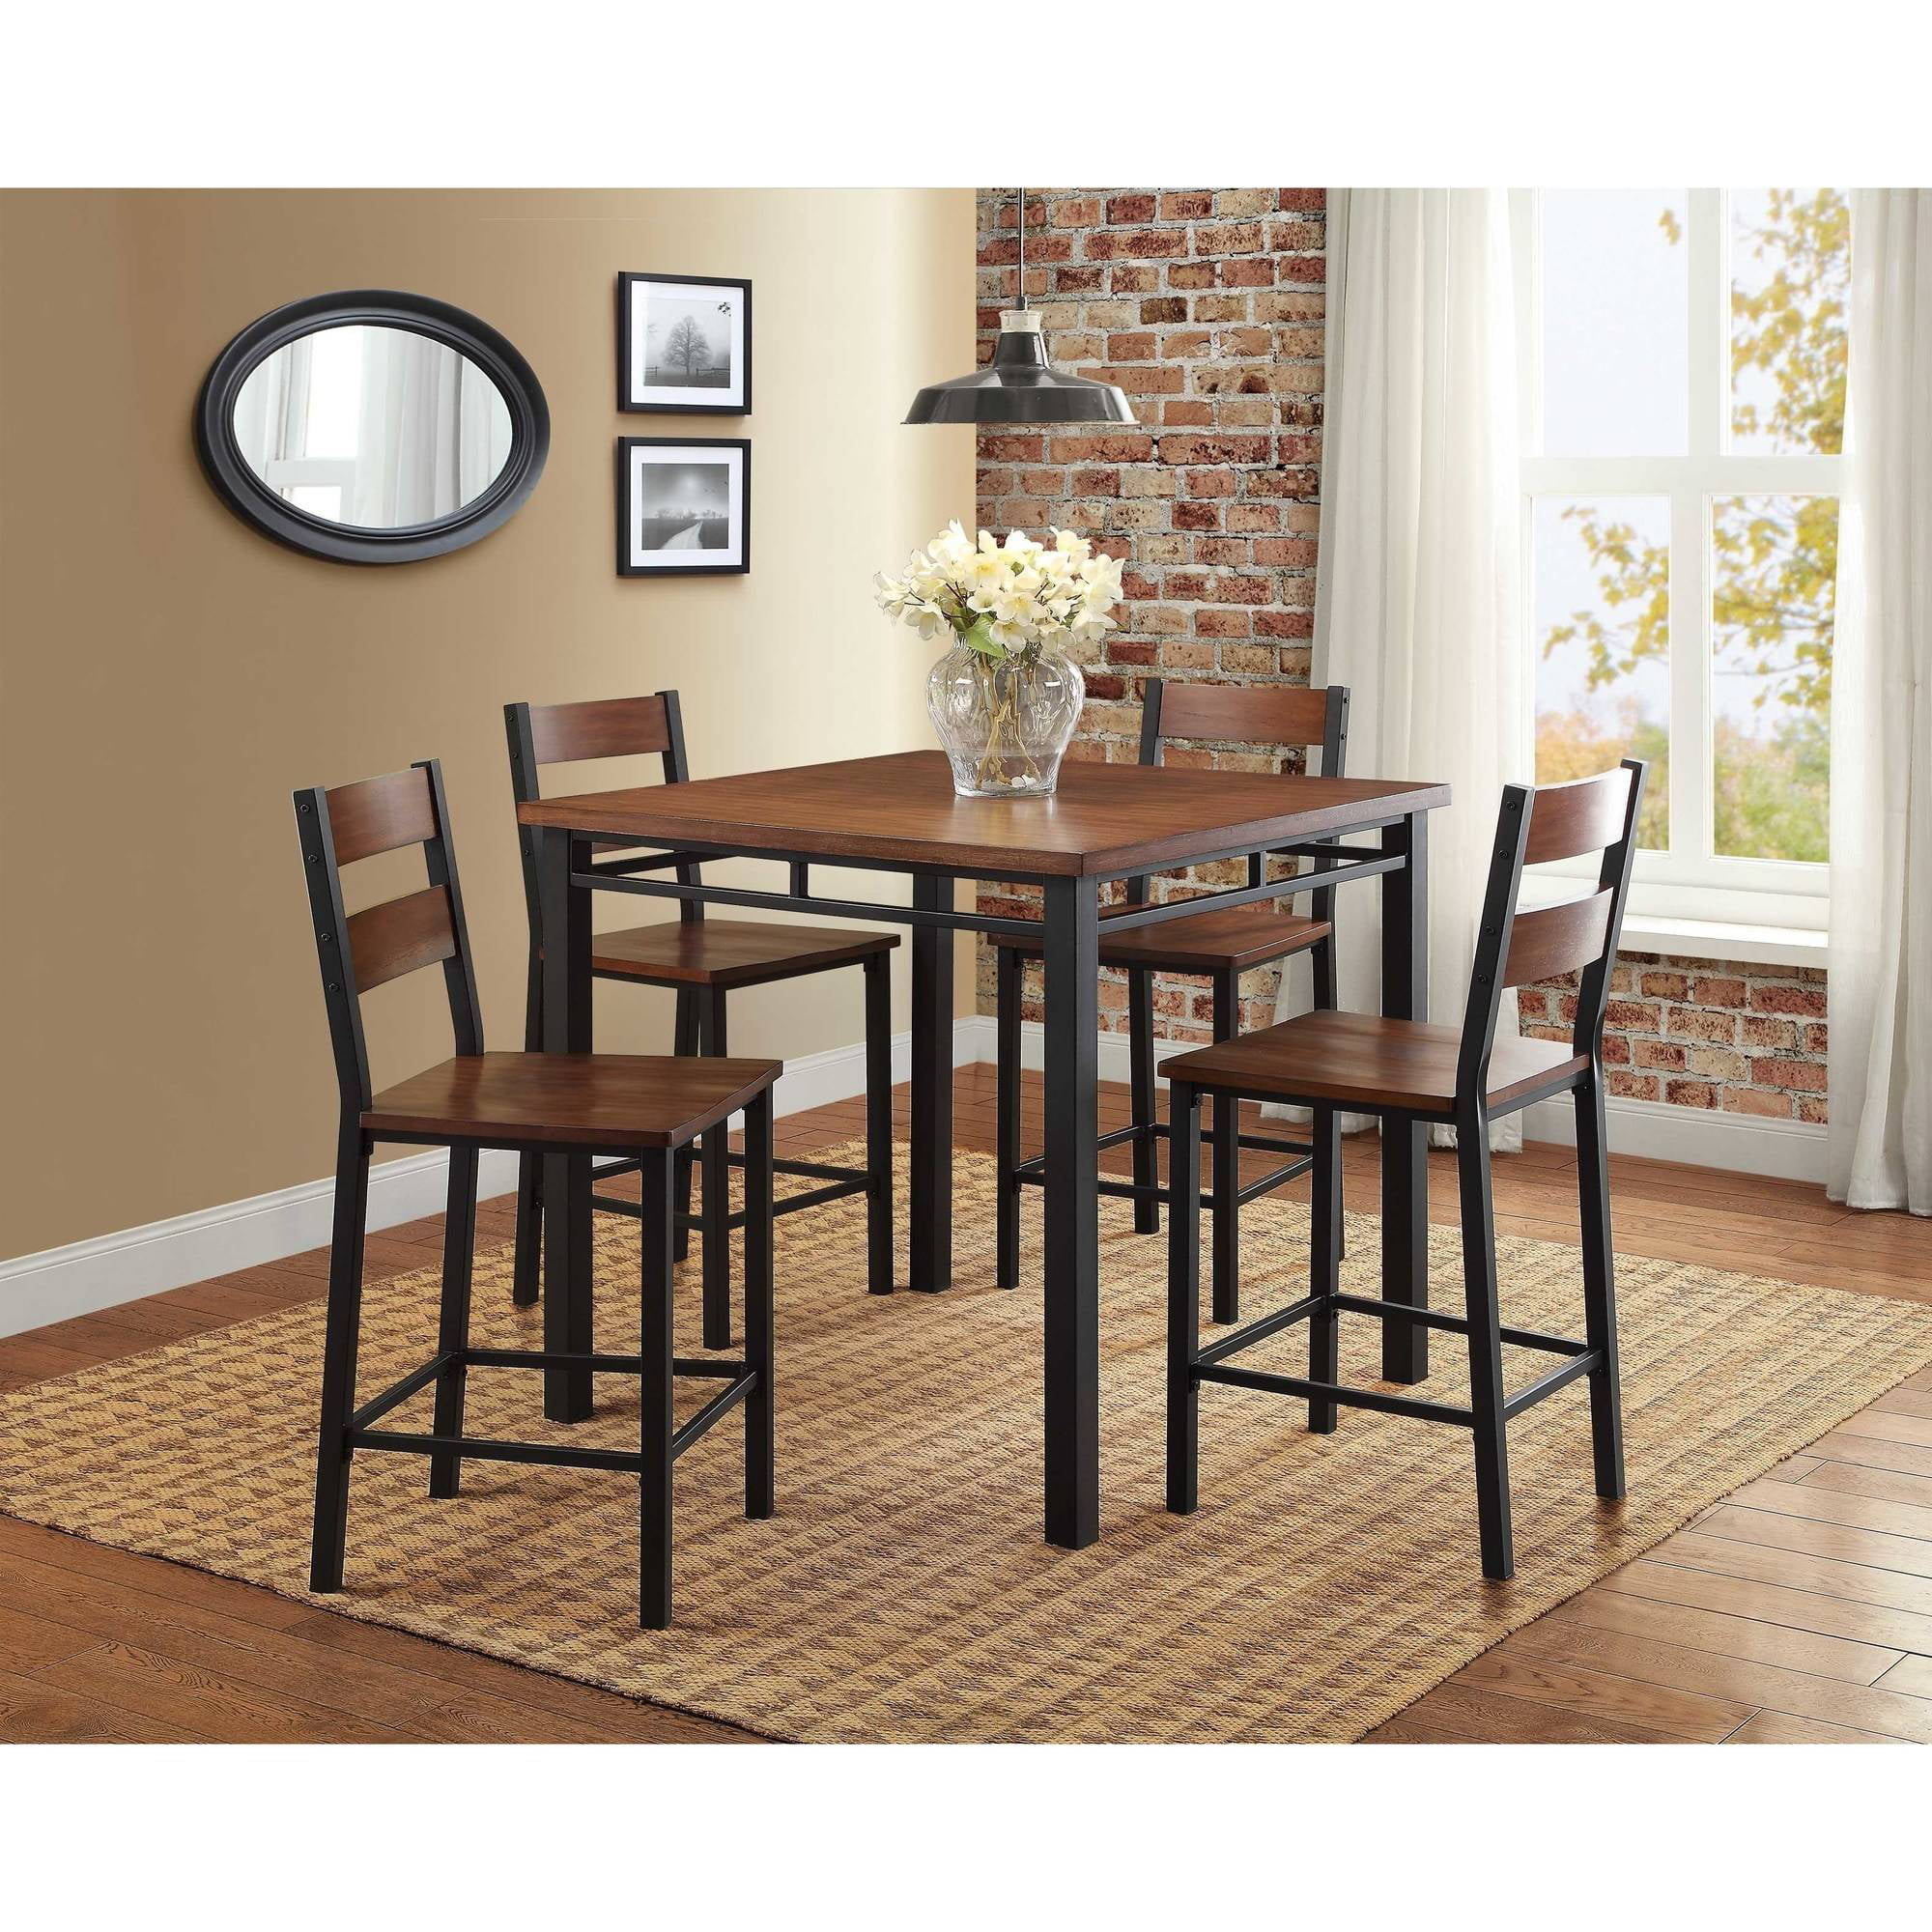 kitchen & dining furniture - walmart